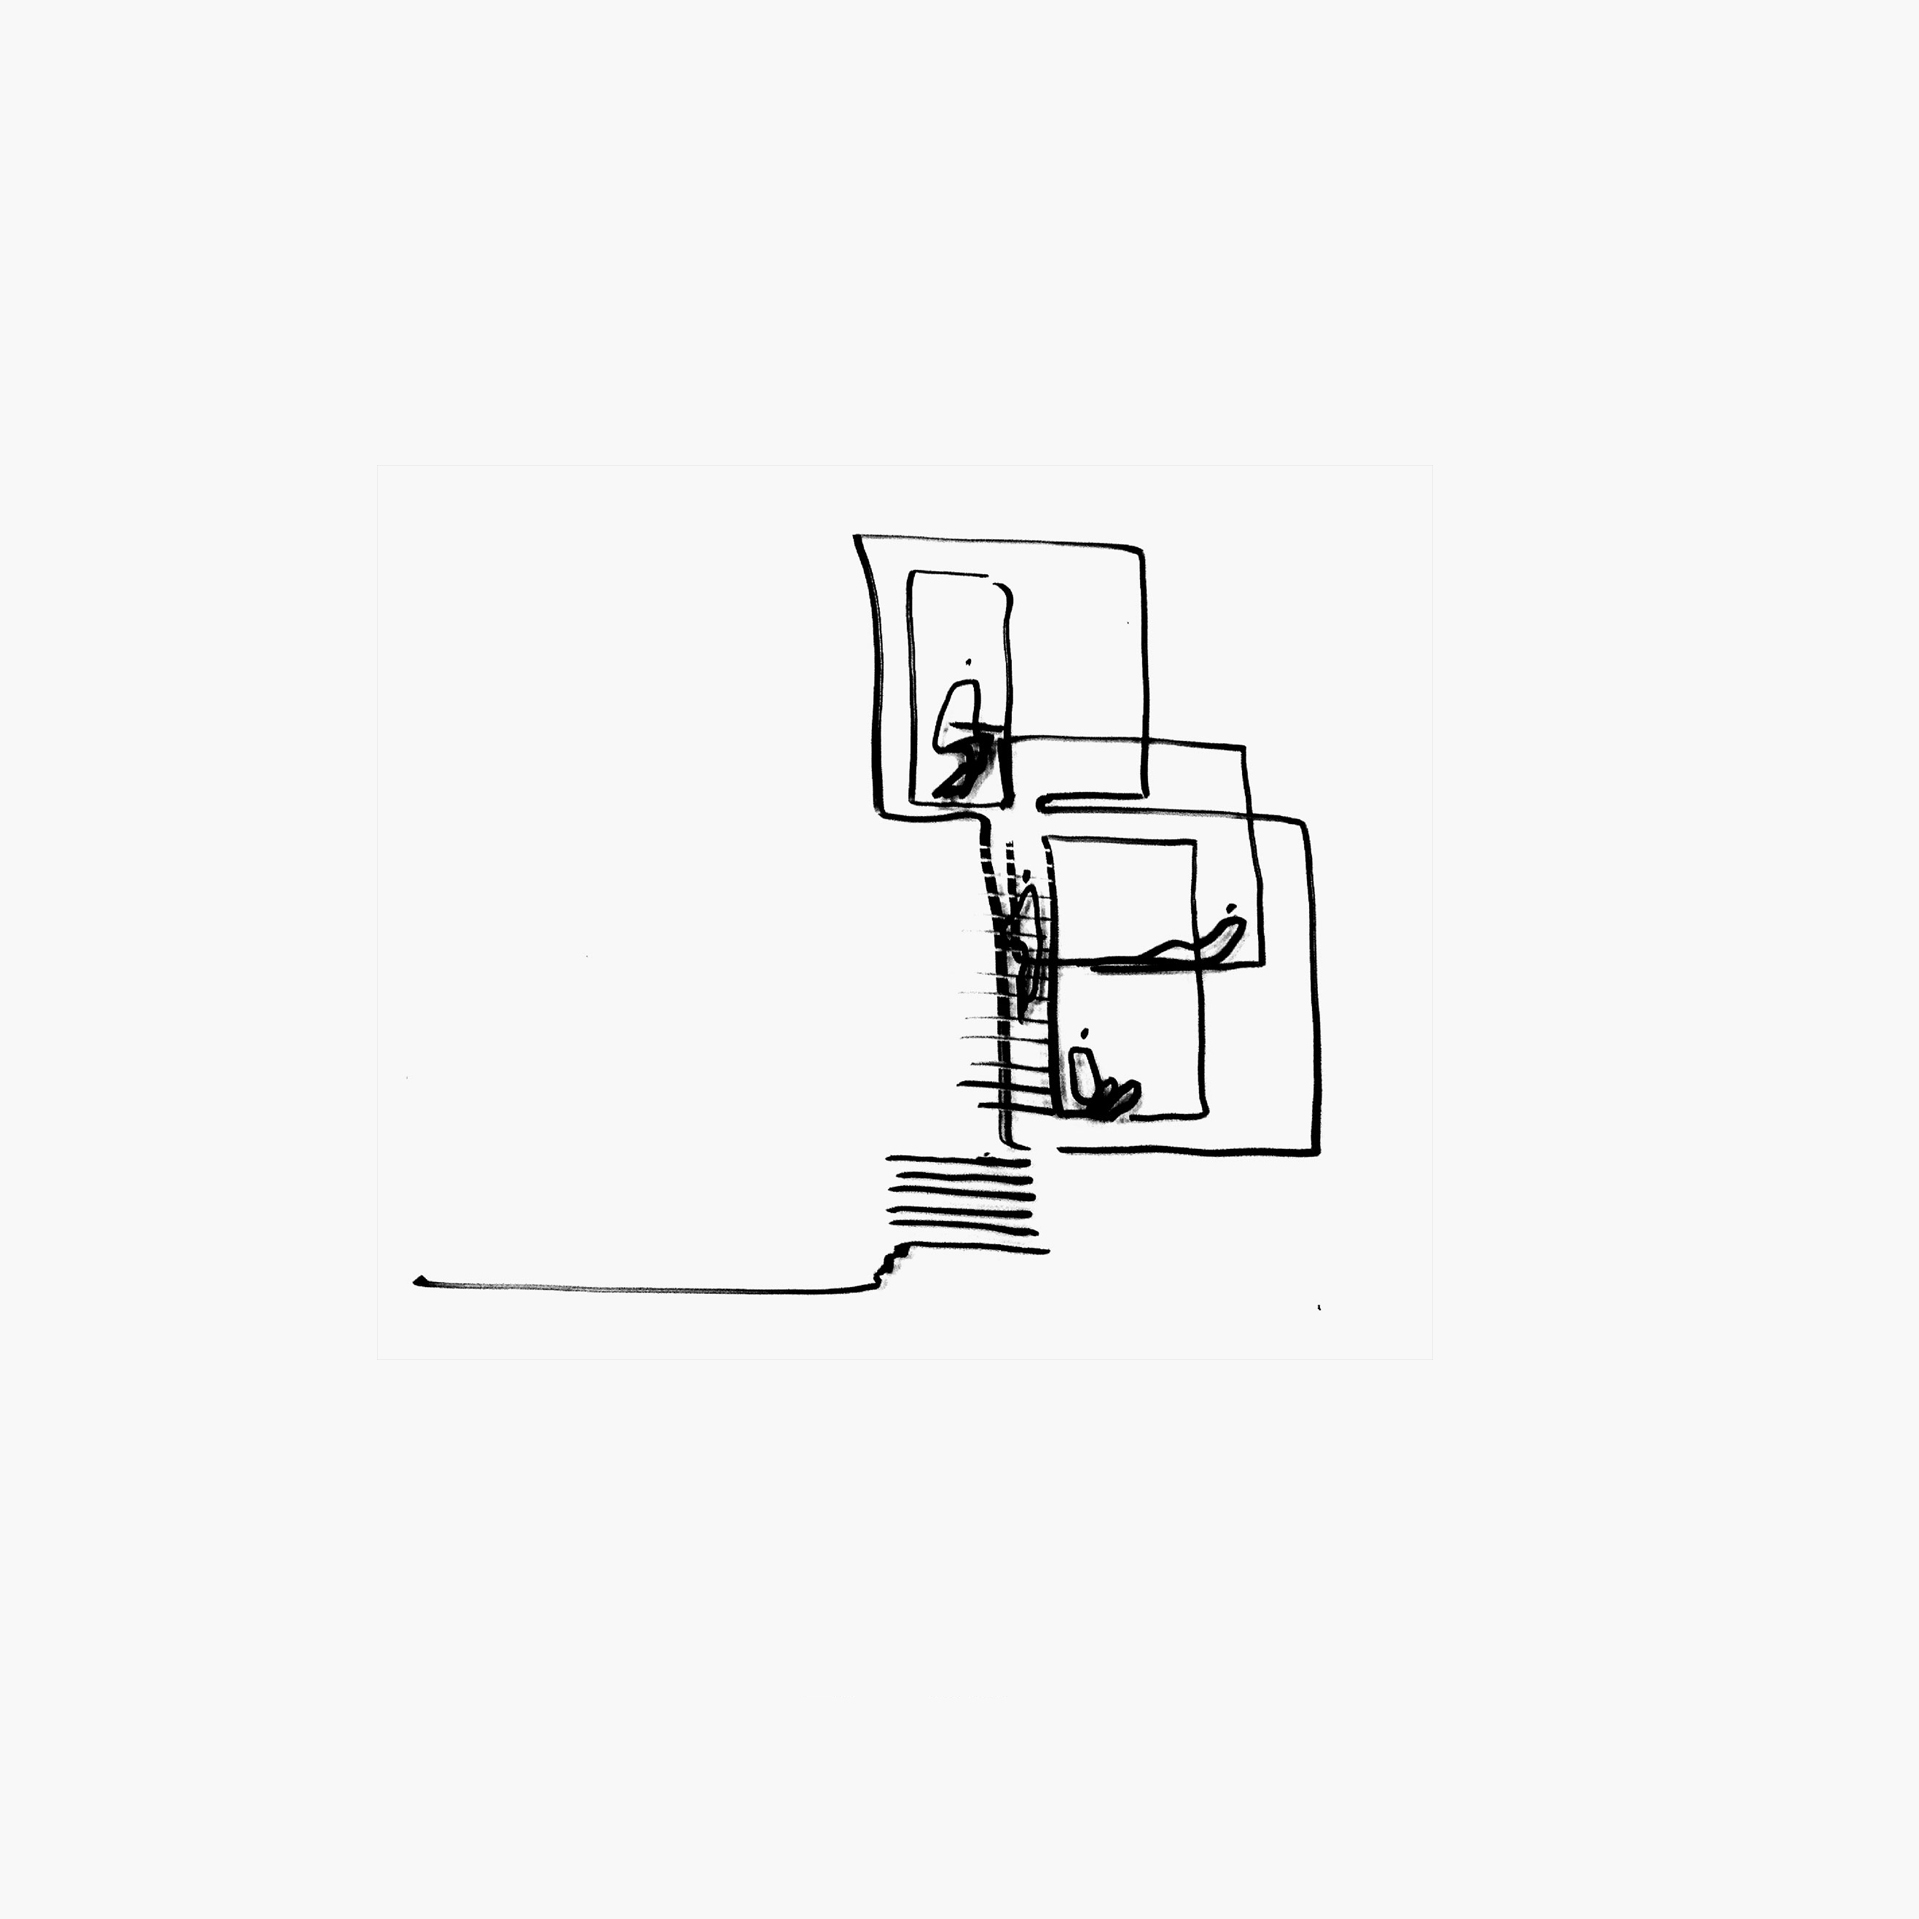 Ja Architecture Studio Basketball Hoop Diagram The Zoning By Law And Construction Challenge Was To Insert A New Structure Between Two Preserved Side Walls Of An Old Bungalow Maintain